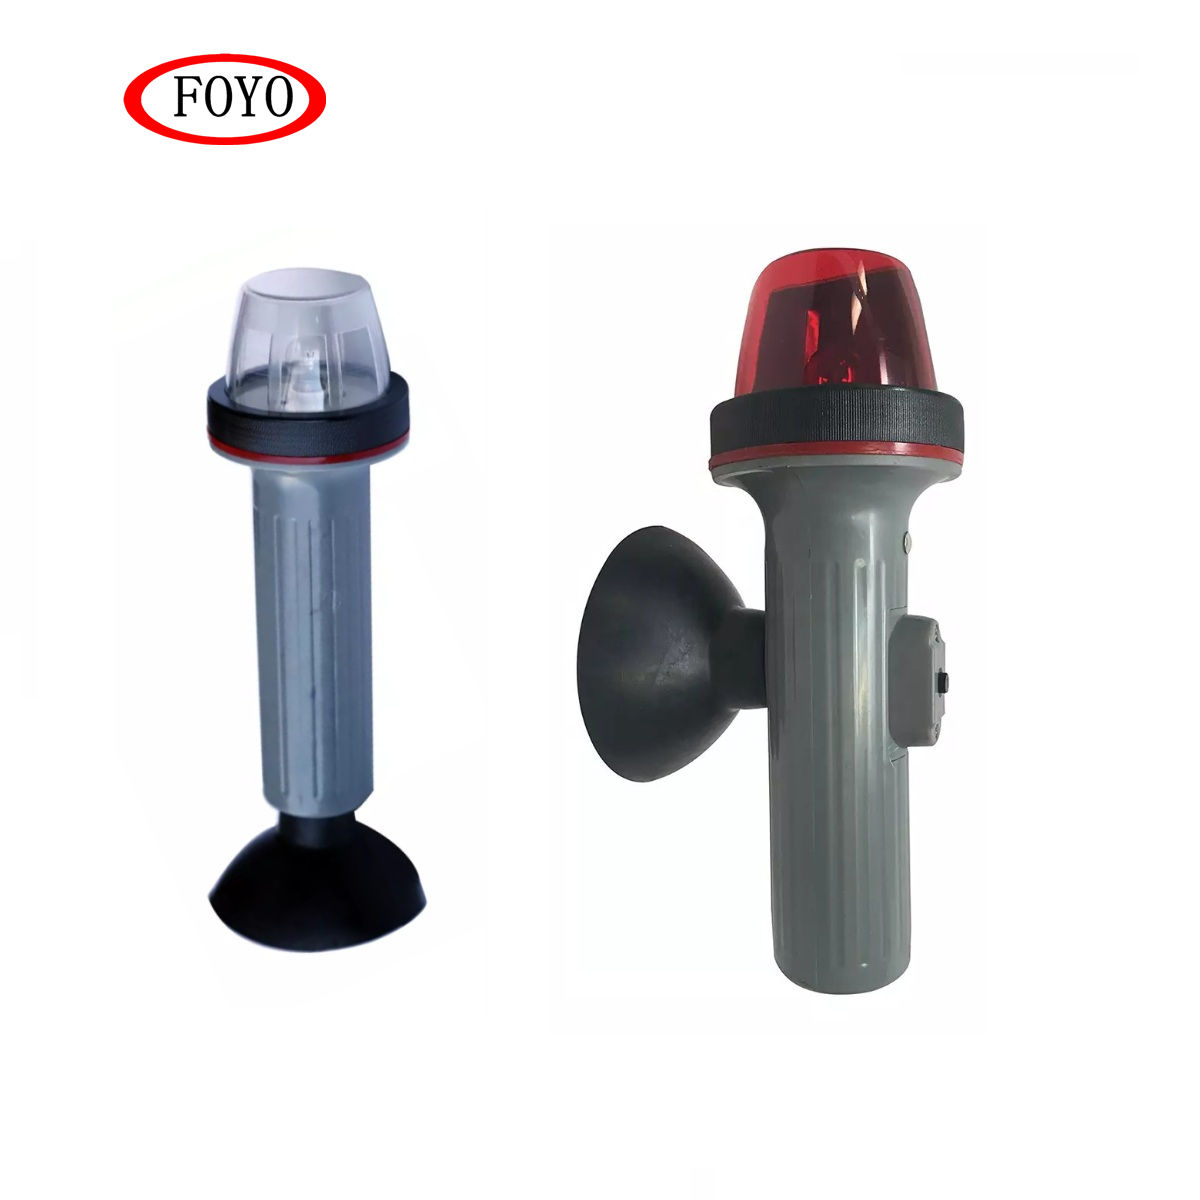 Foyo New Arrival Boat Lamps Accessories suction cup mount Portable Stern Lights LED All Round Lamp